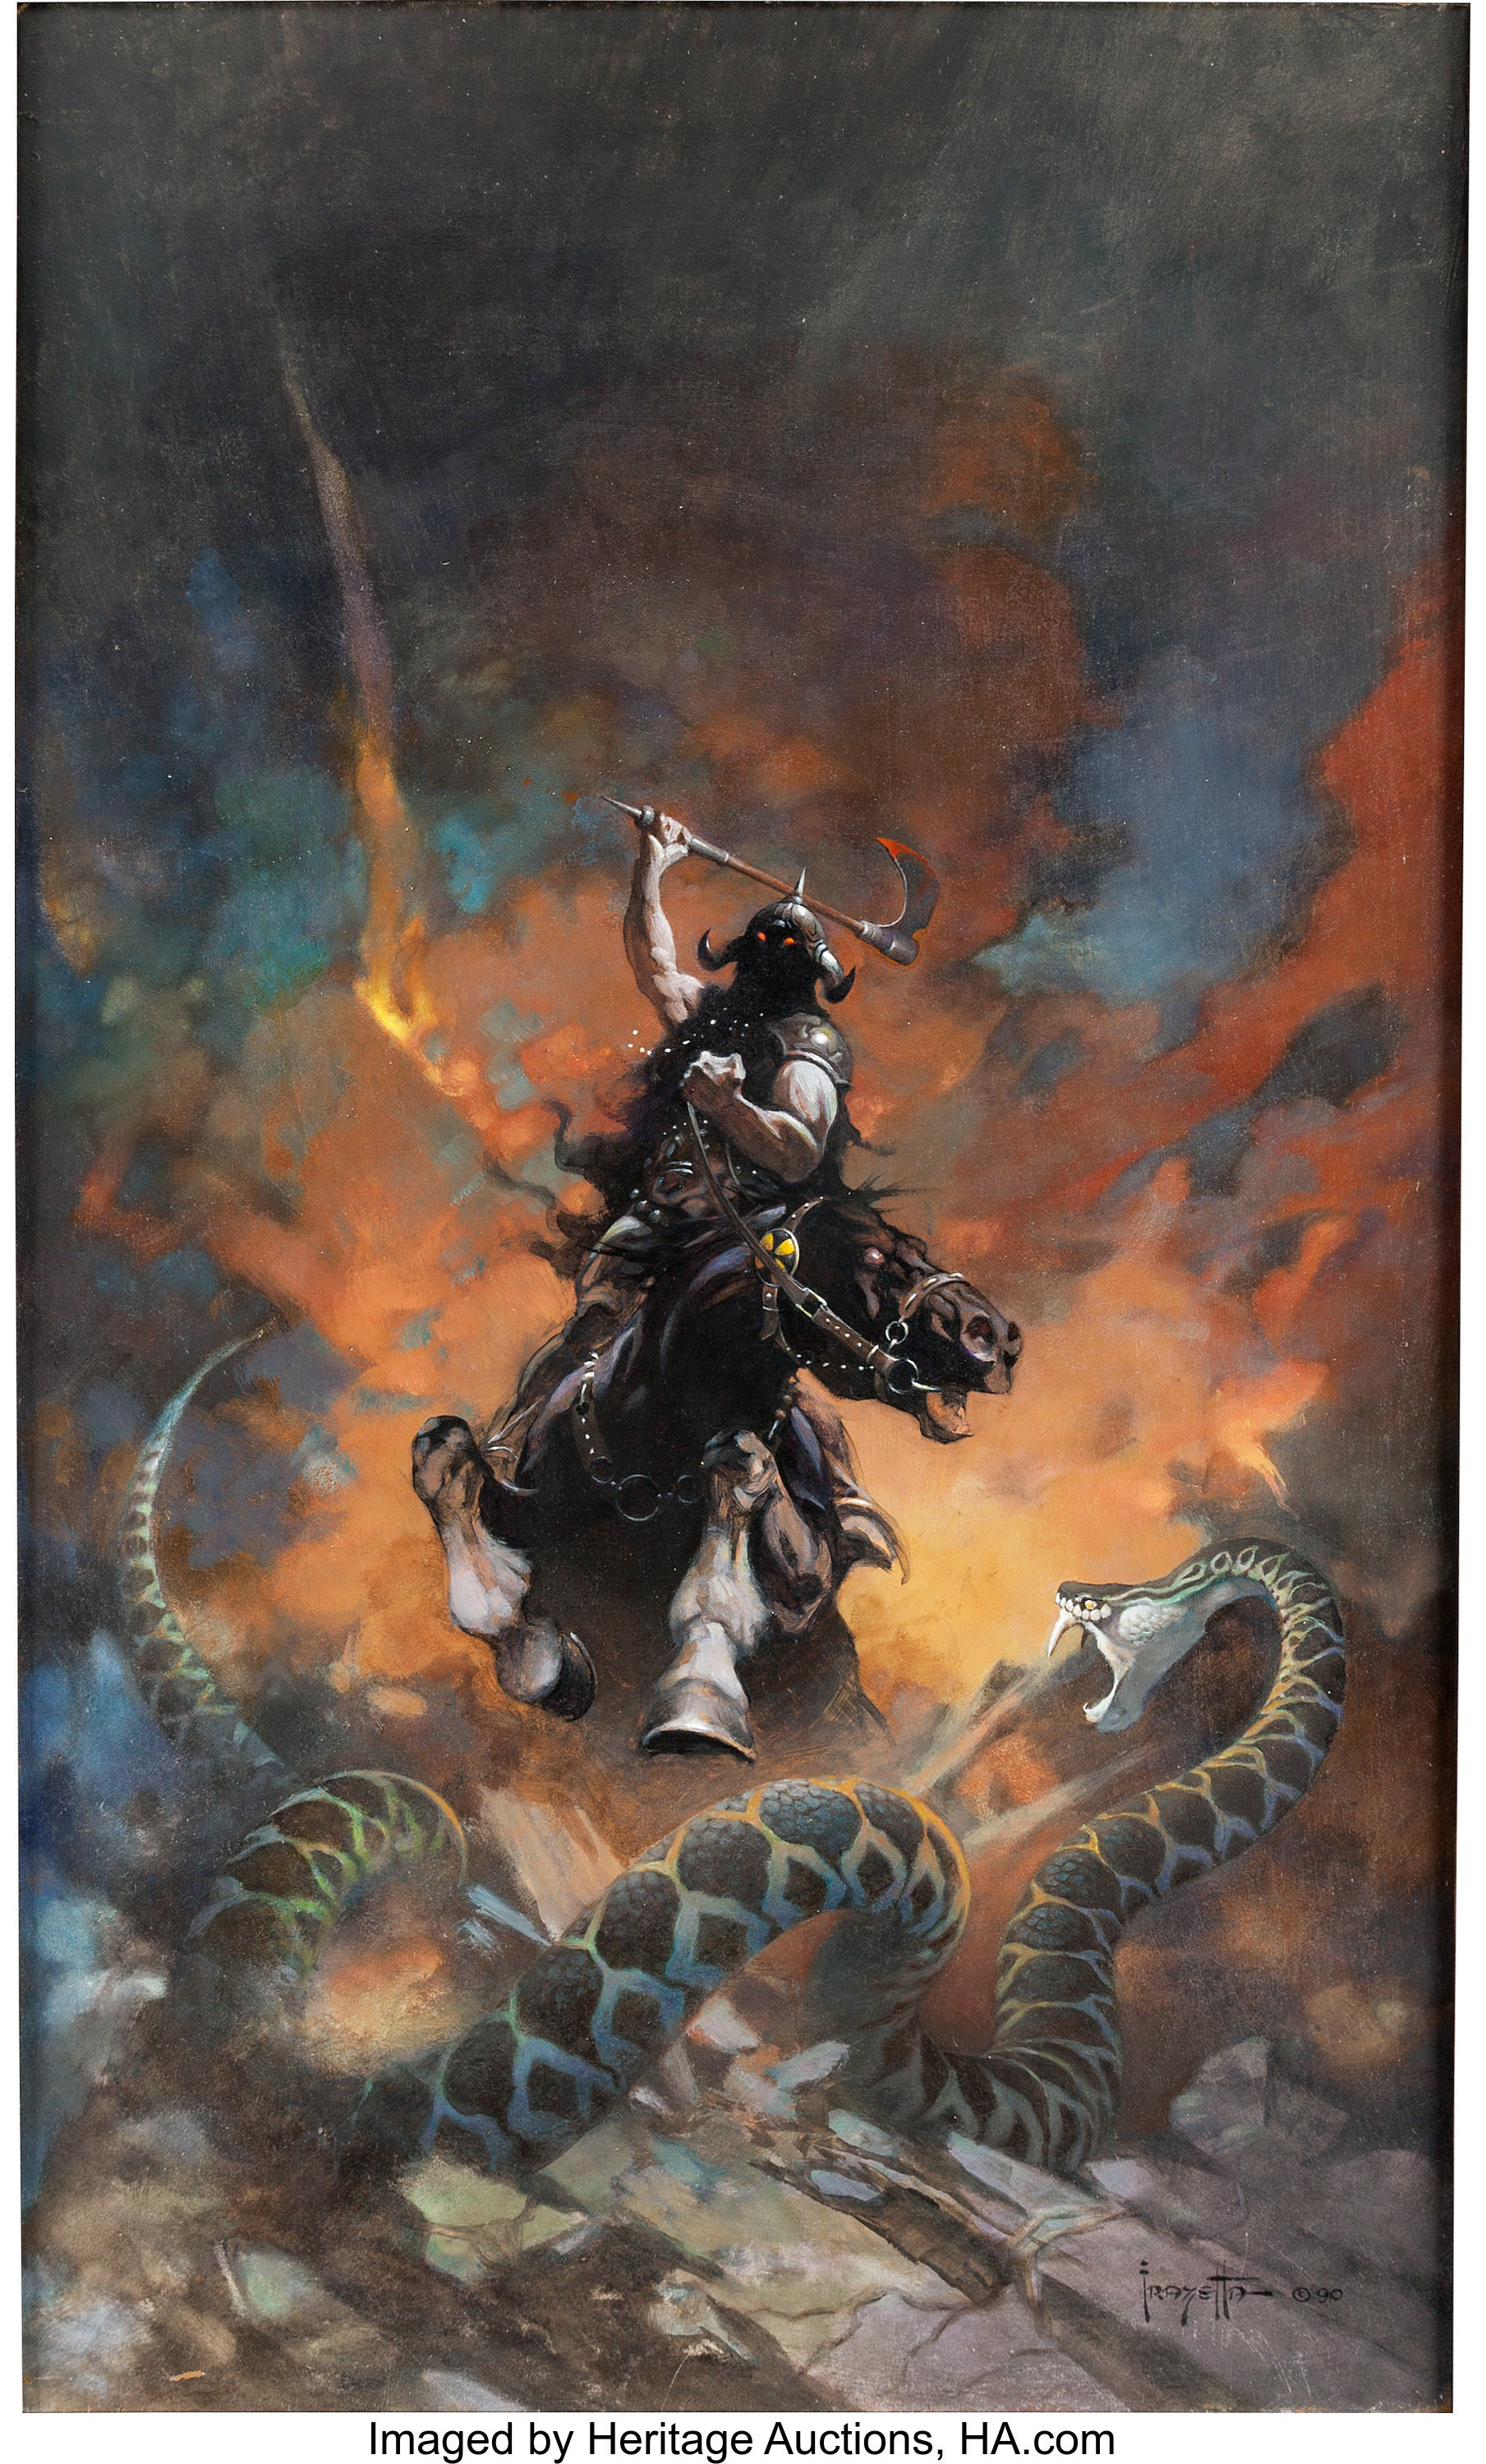 Death Dealer 6, an original painting done in 1990 by the late Frank Frazetta. Heritage Auctions sold it in May 2018 for $1.7 million, an auction record for the artist, and for any piece of comic art.